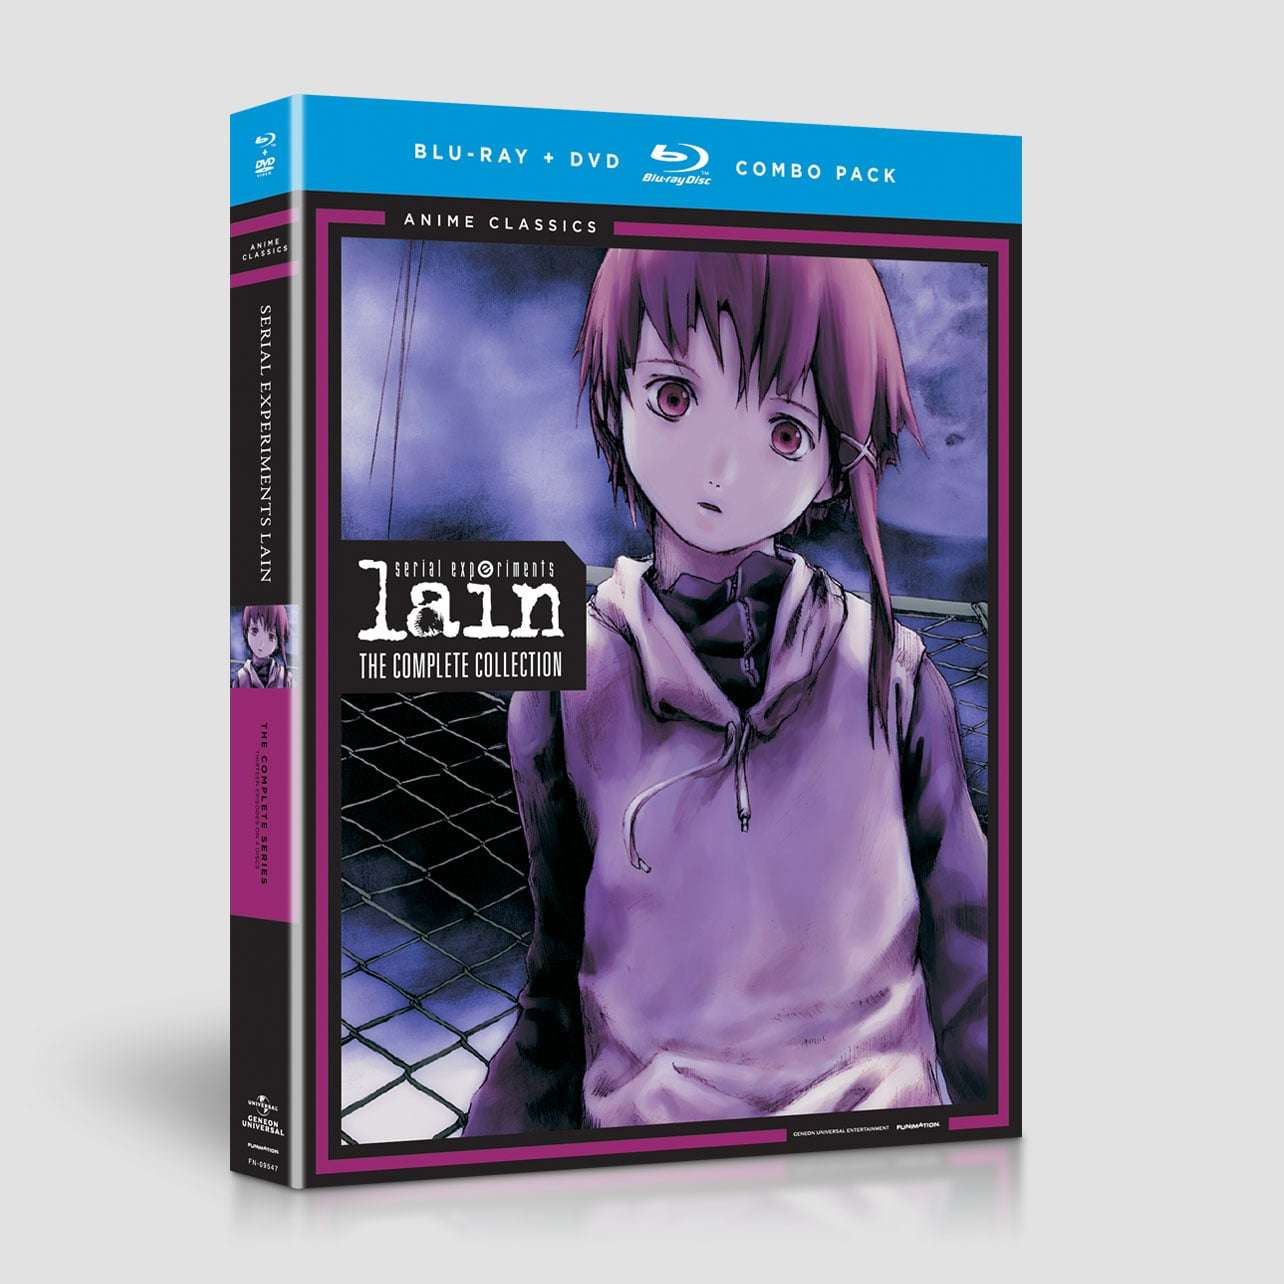 The Complete Series - Anime Classics SALE